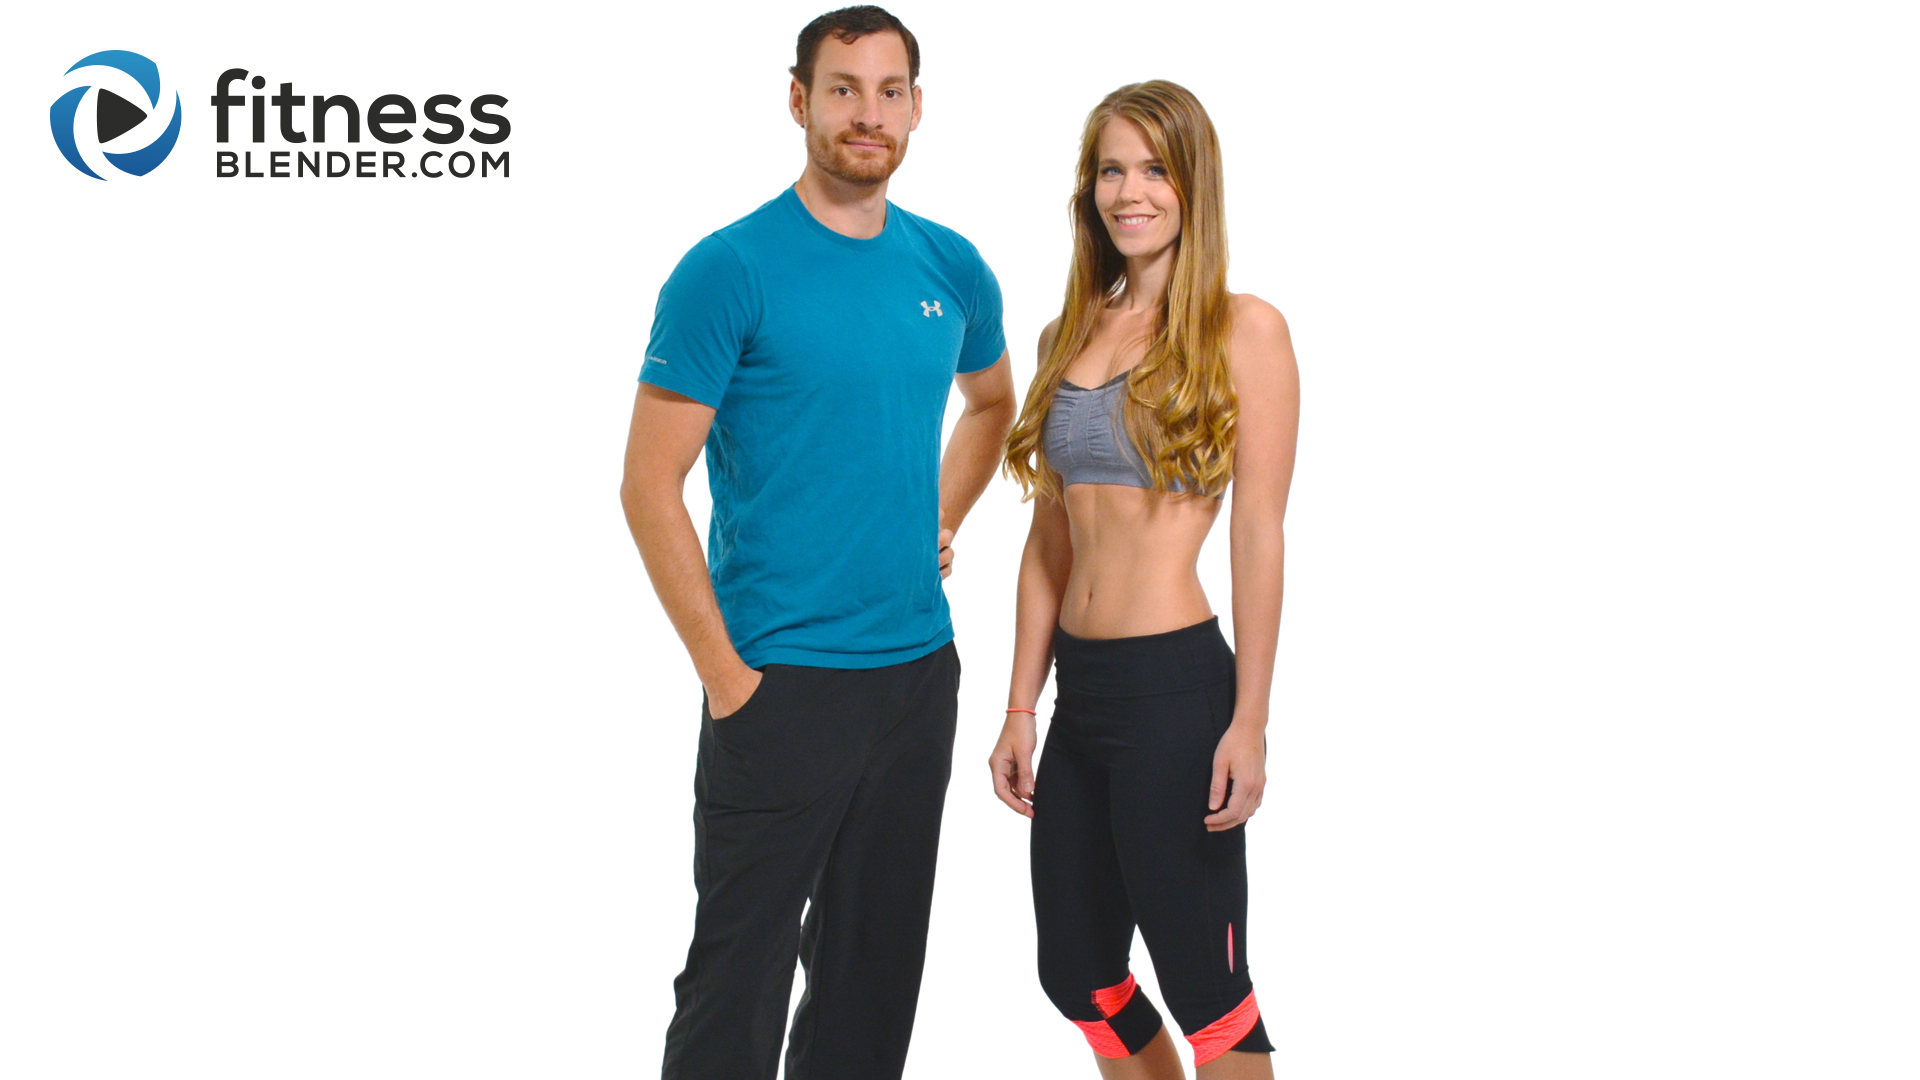 Low Impact HIIT Cardio Workout - The 4 Best Low Impact Cardio ...